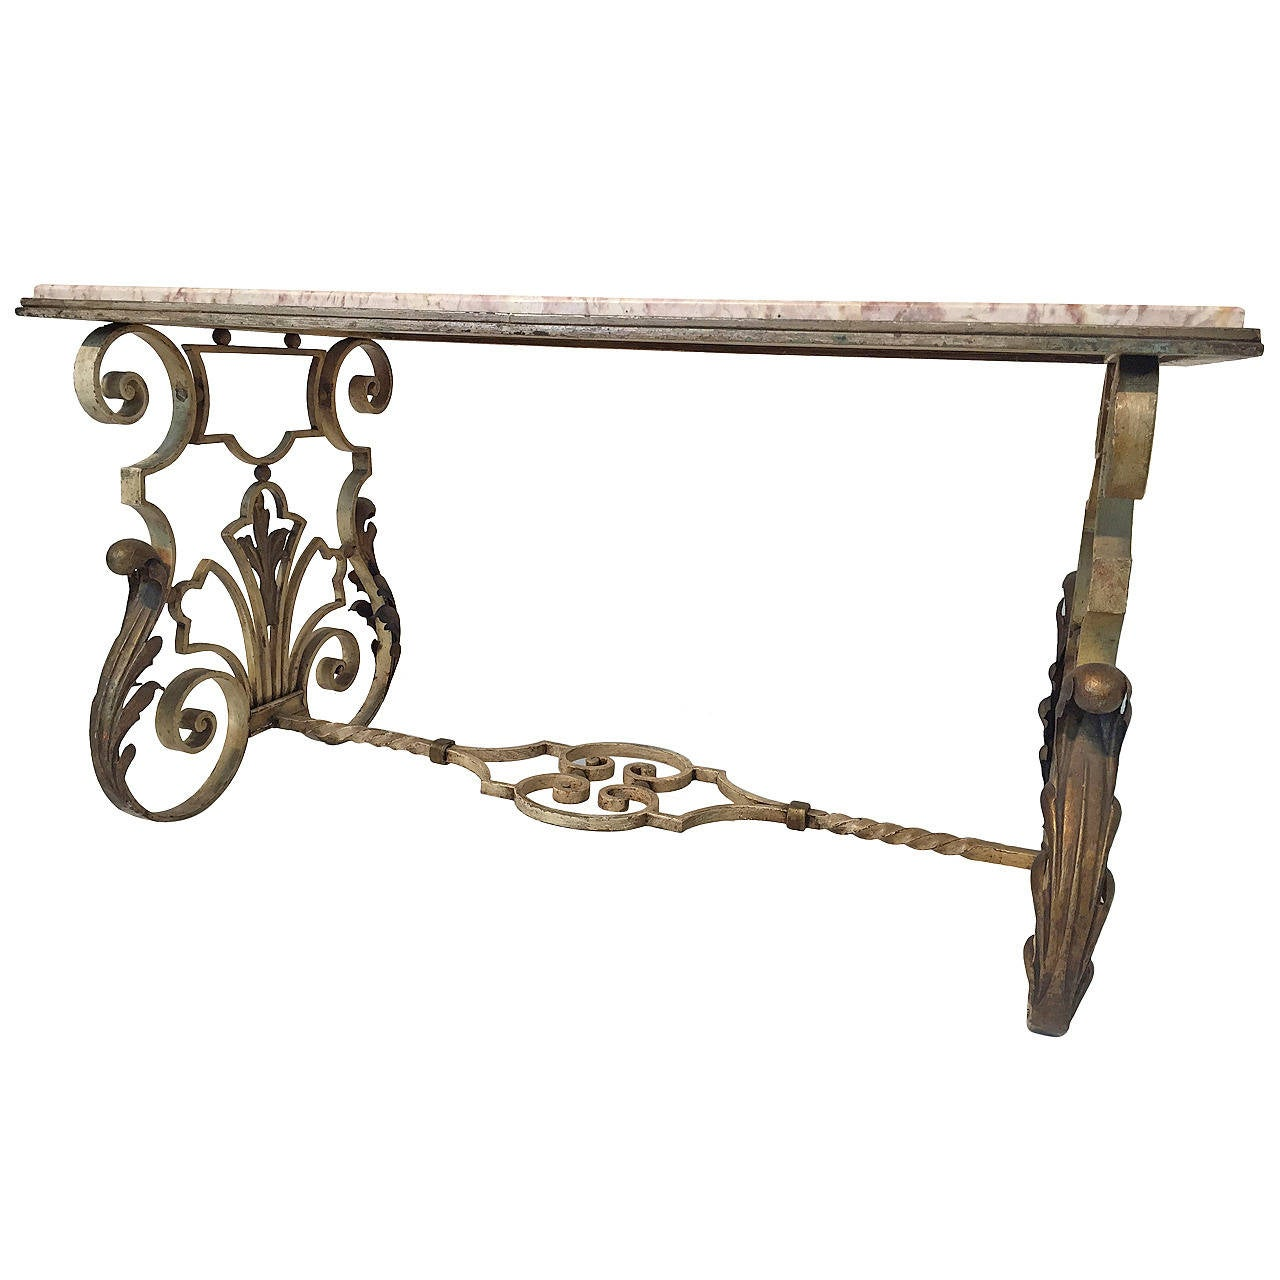 Rococo revival cast iron table at 1stdibs for Cast iron end table